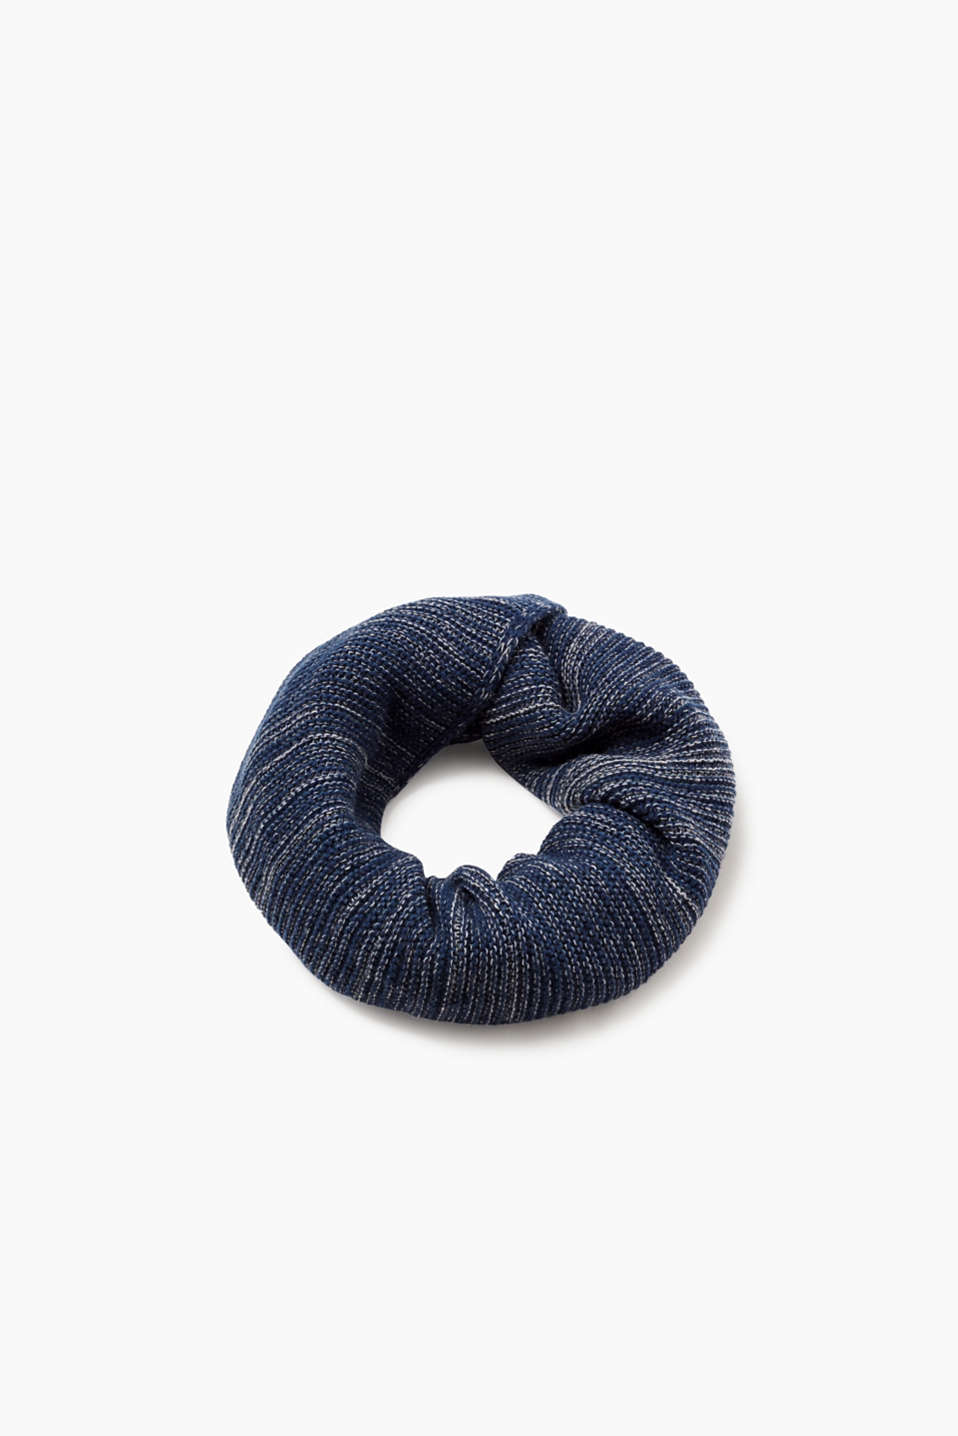 We love knitwear! The two-tone knit with wool makes this snood a high-quality accessory.